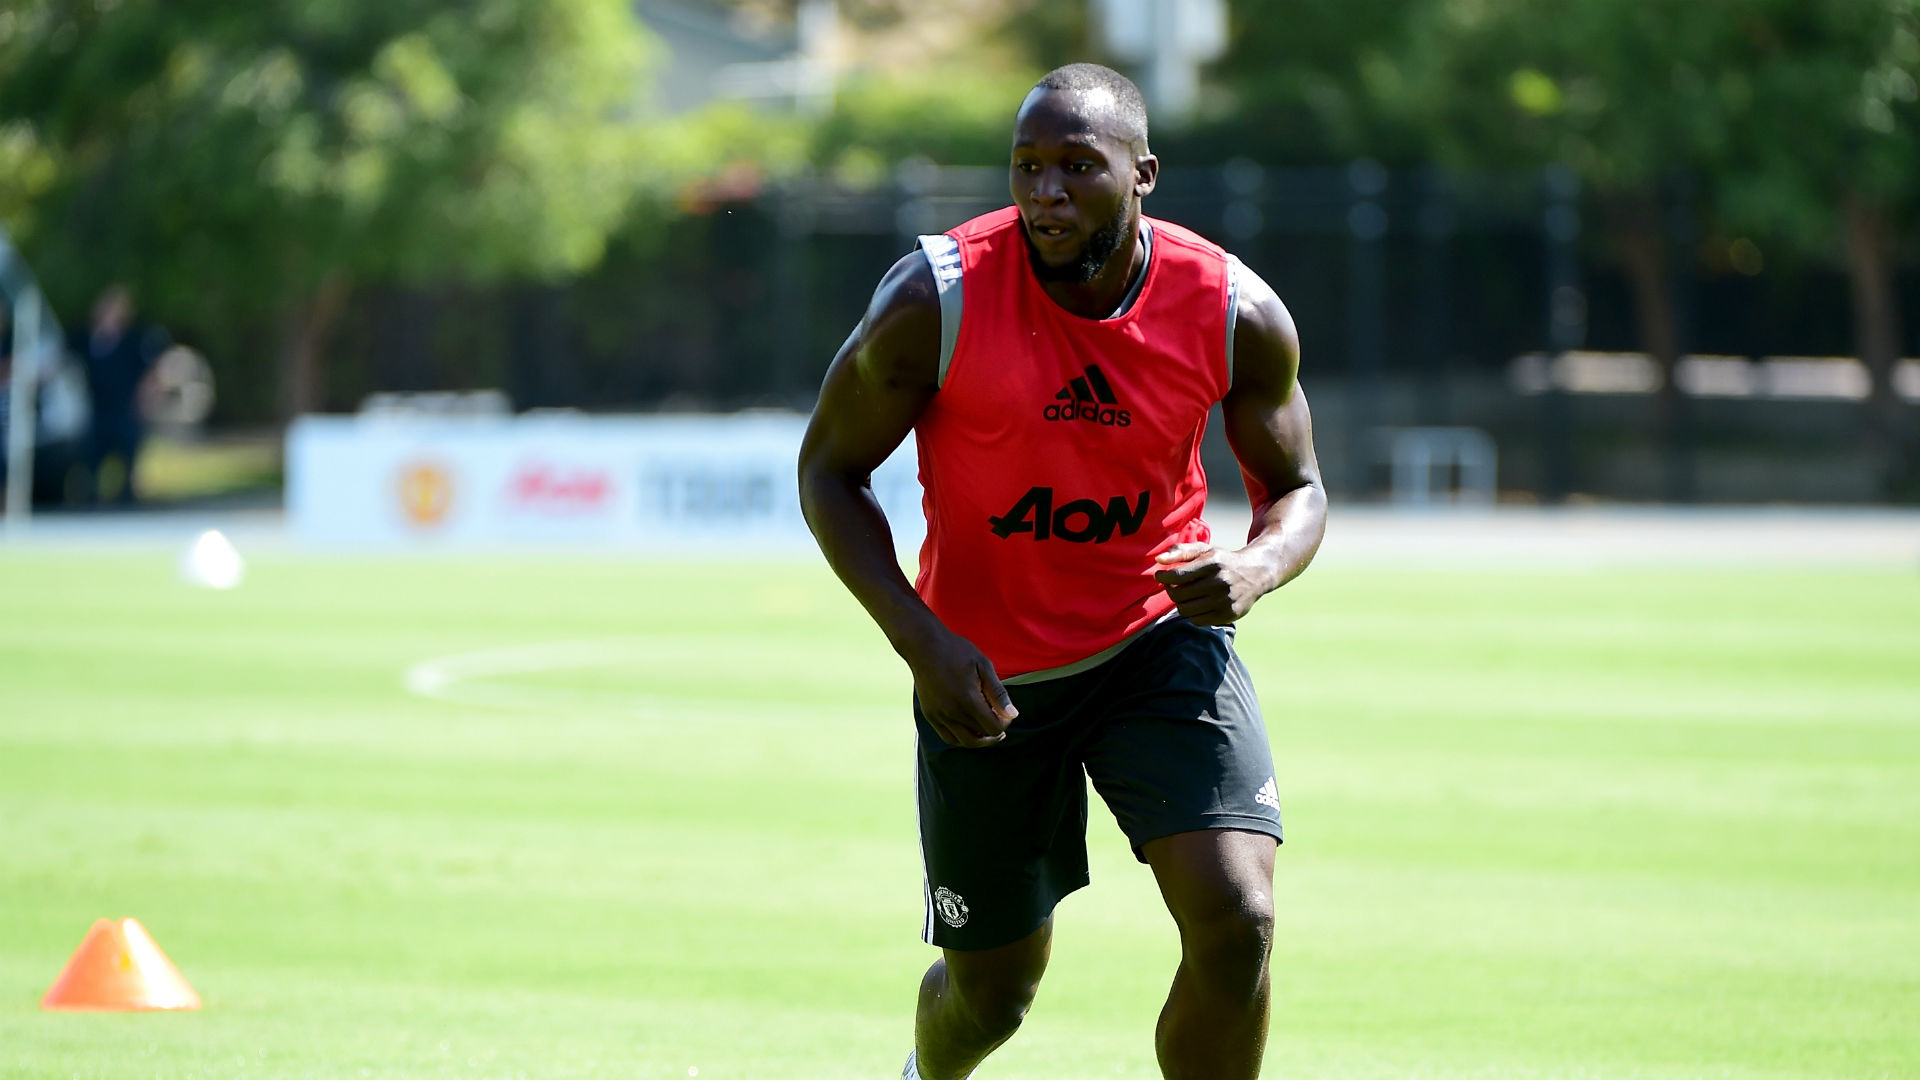 5 reasons why Romelu Lukaku will be a hit at Manchester United